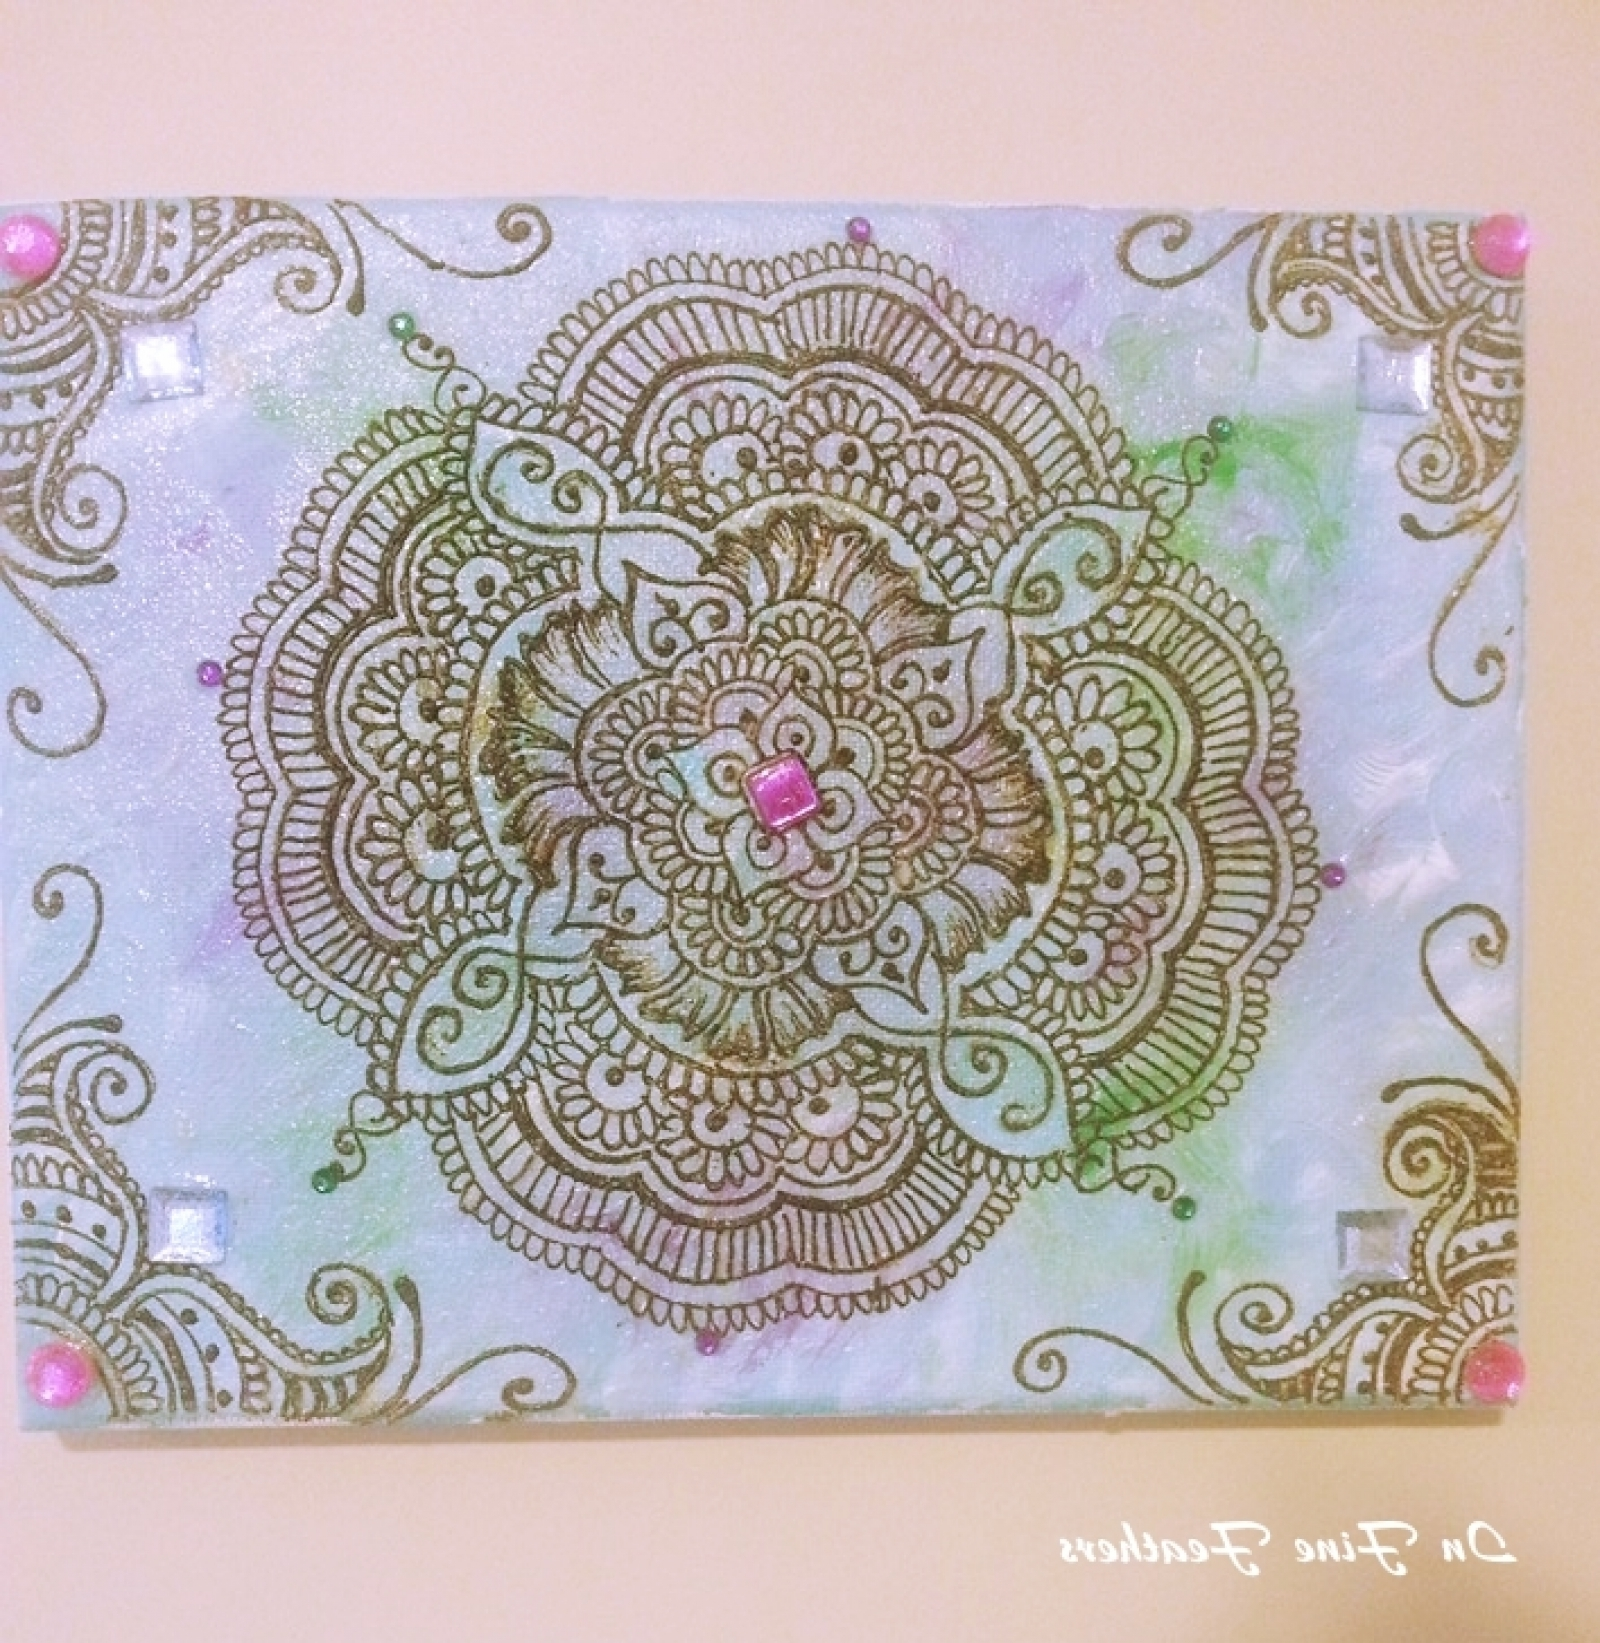 Most Recent Henna Mandala Boho Chic Wall Art Yoga Studio Office Spring Decor With Henna Wall Art (View 5 of 15)